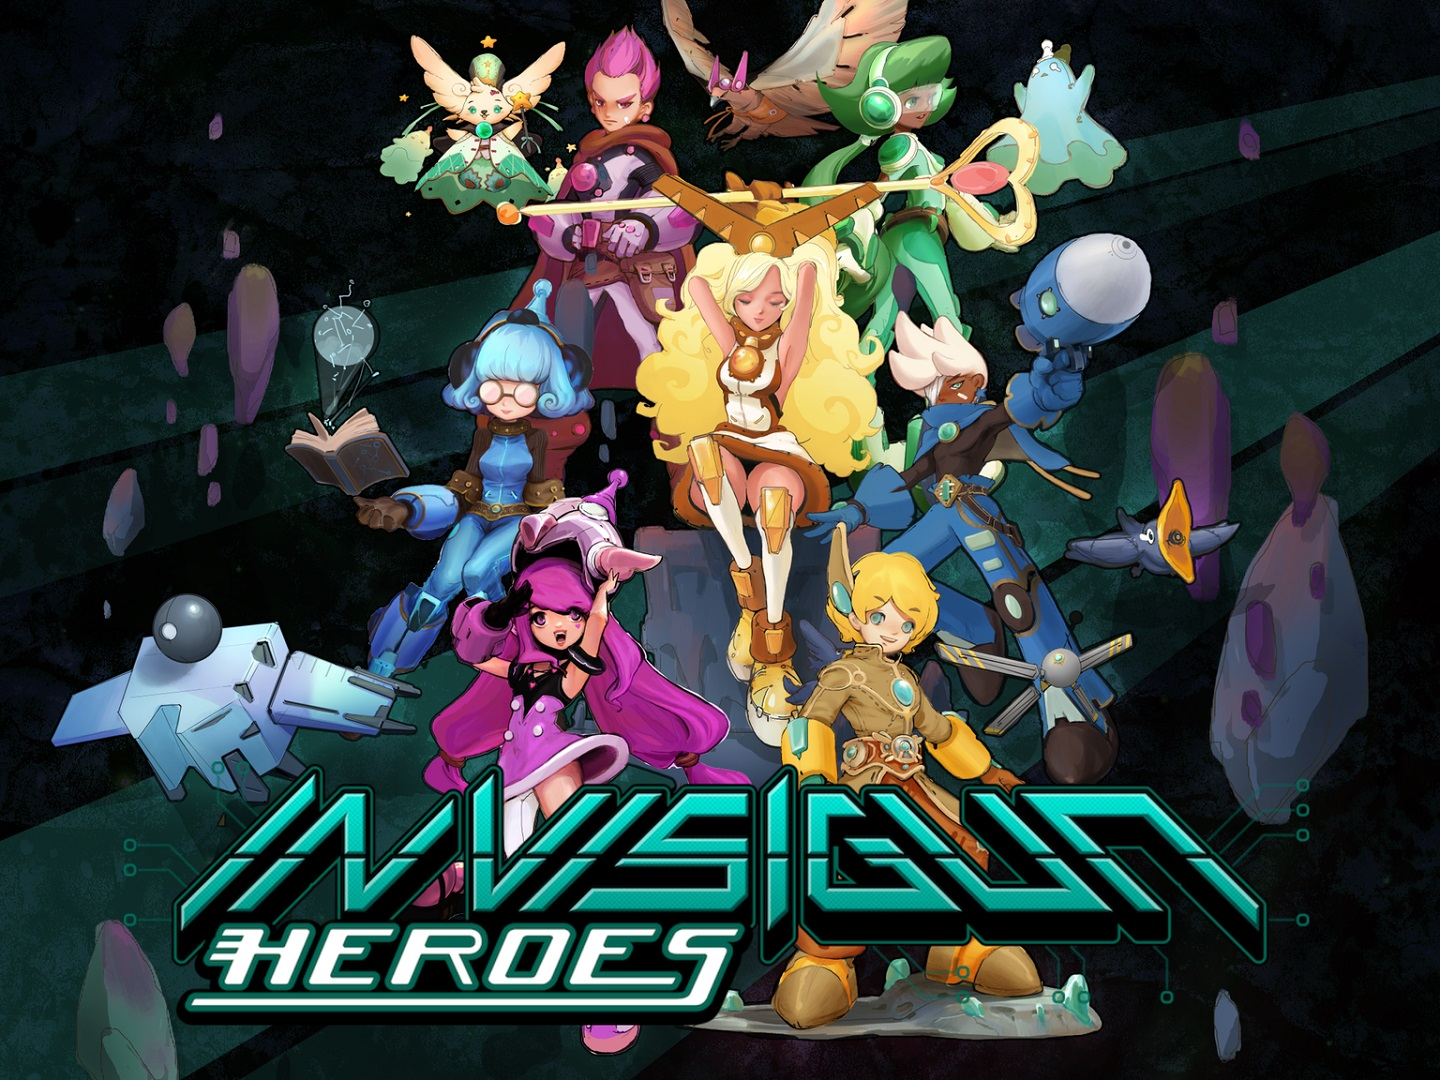 Invisigun Heroes Puts An Invisible Twist On Classic